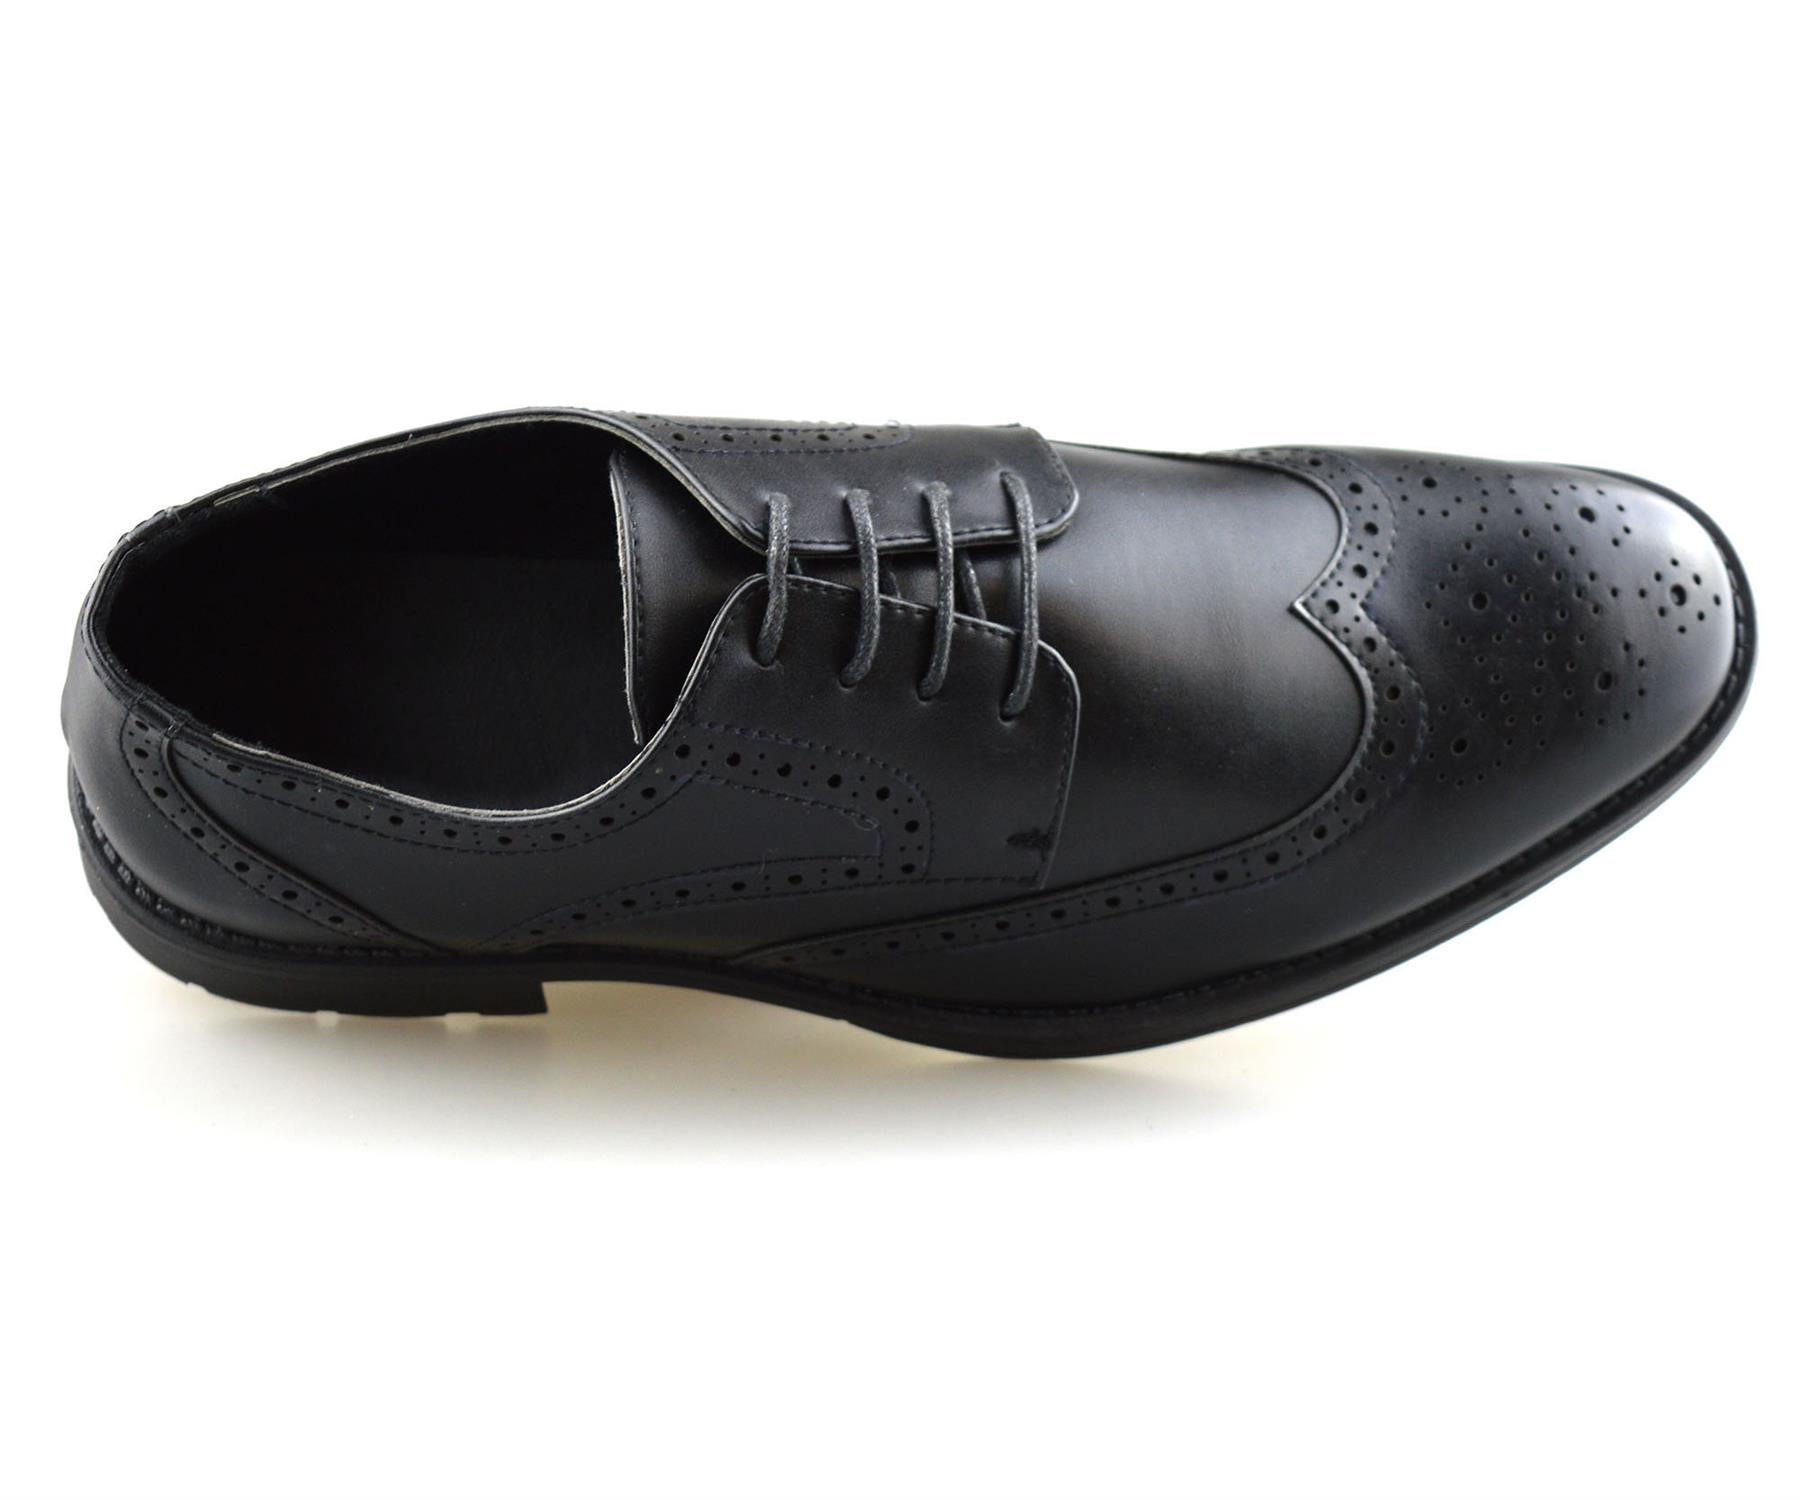 Mens-Smart-Casual-Lace-Up-Formal-Oxford-Brogues-Walking-Work-Office-Shoes-Size thumbnail 12